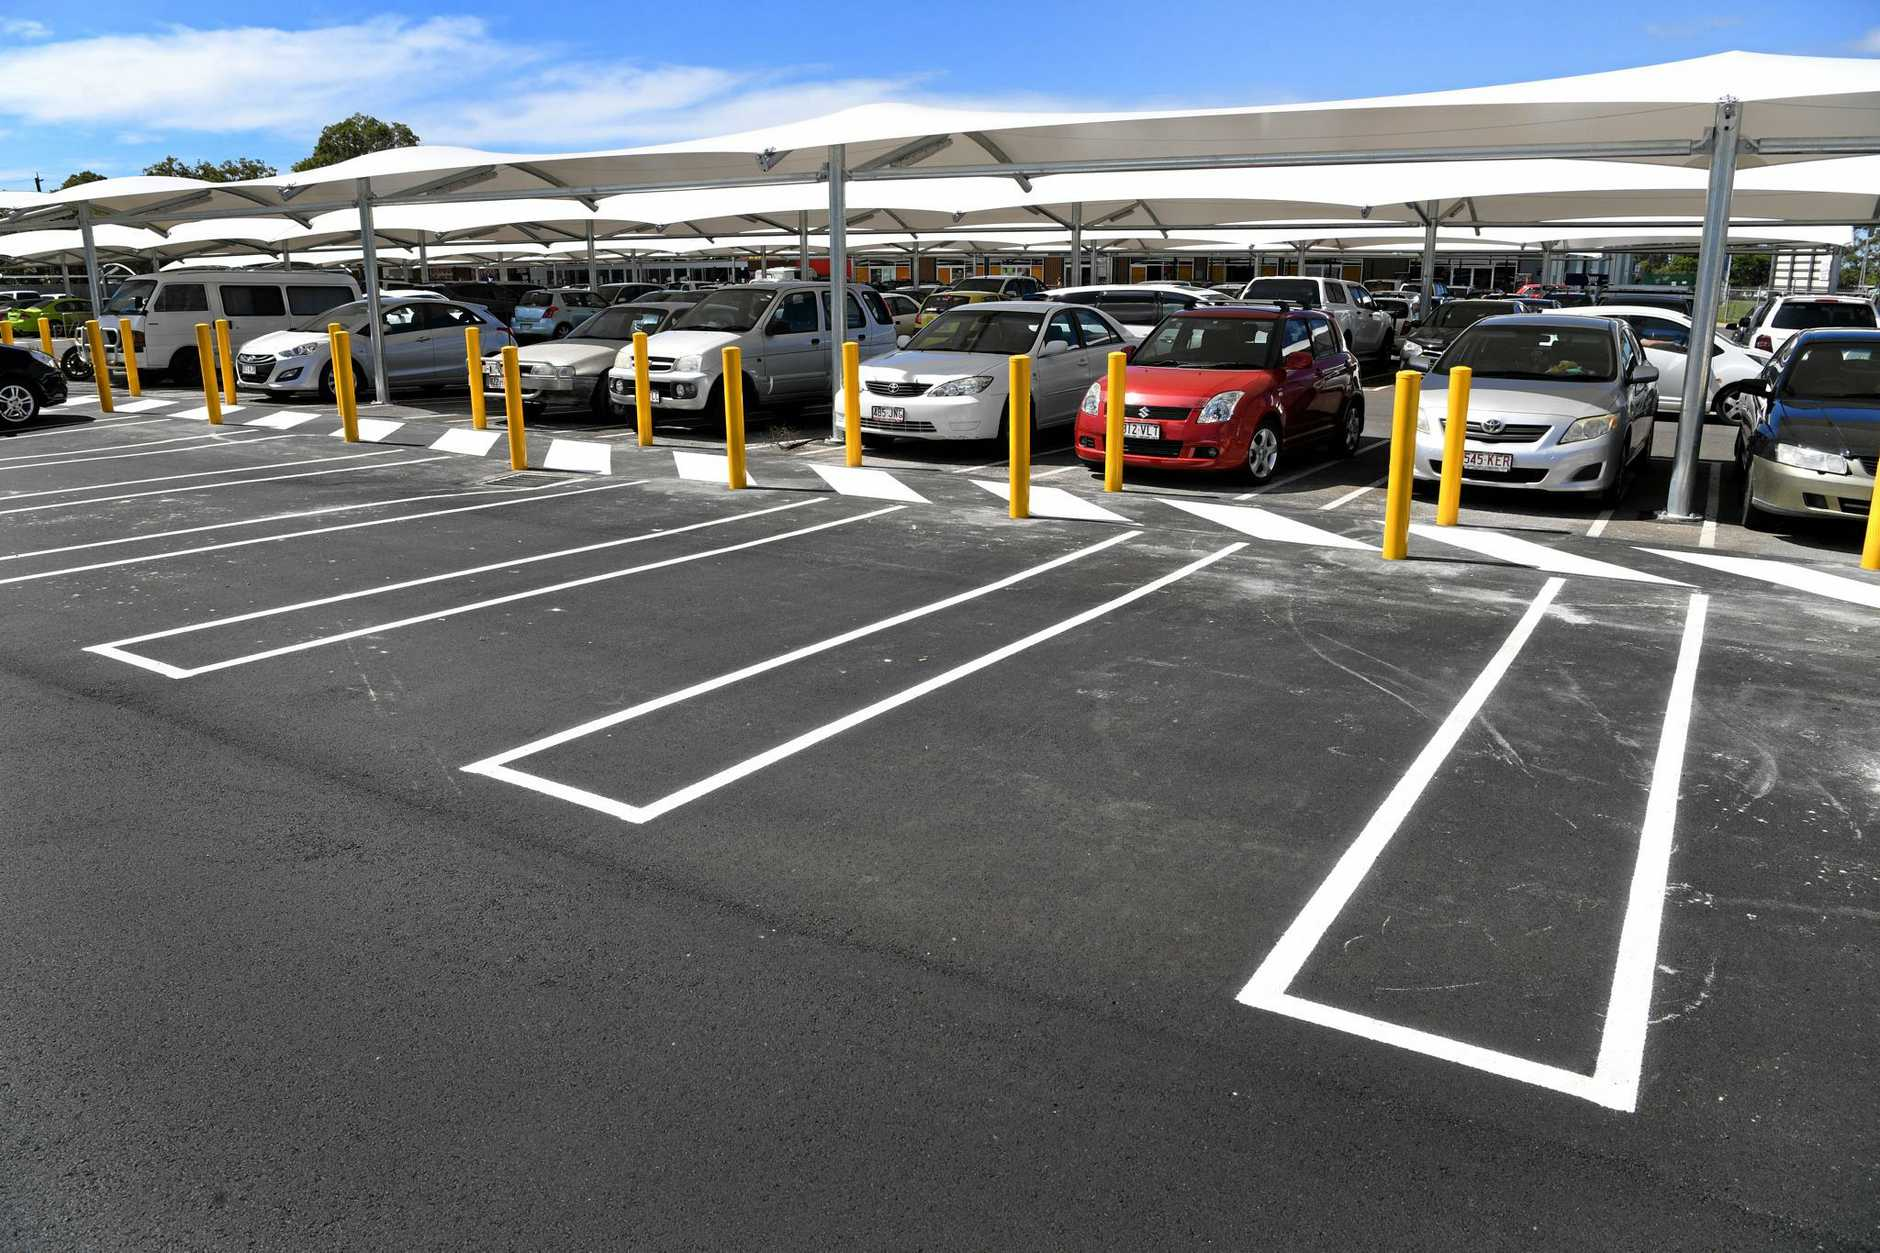 Parking markings at the Stockland Kensington shopping centre.